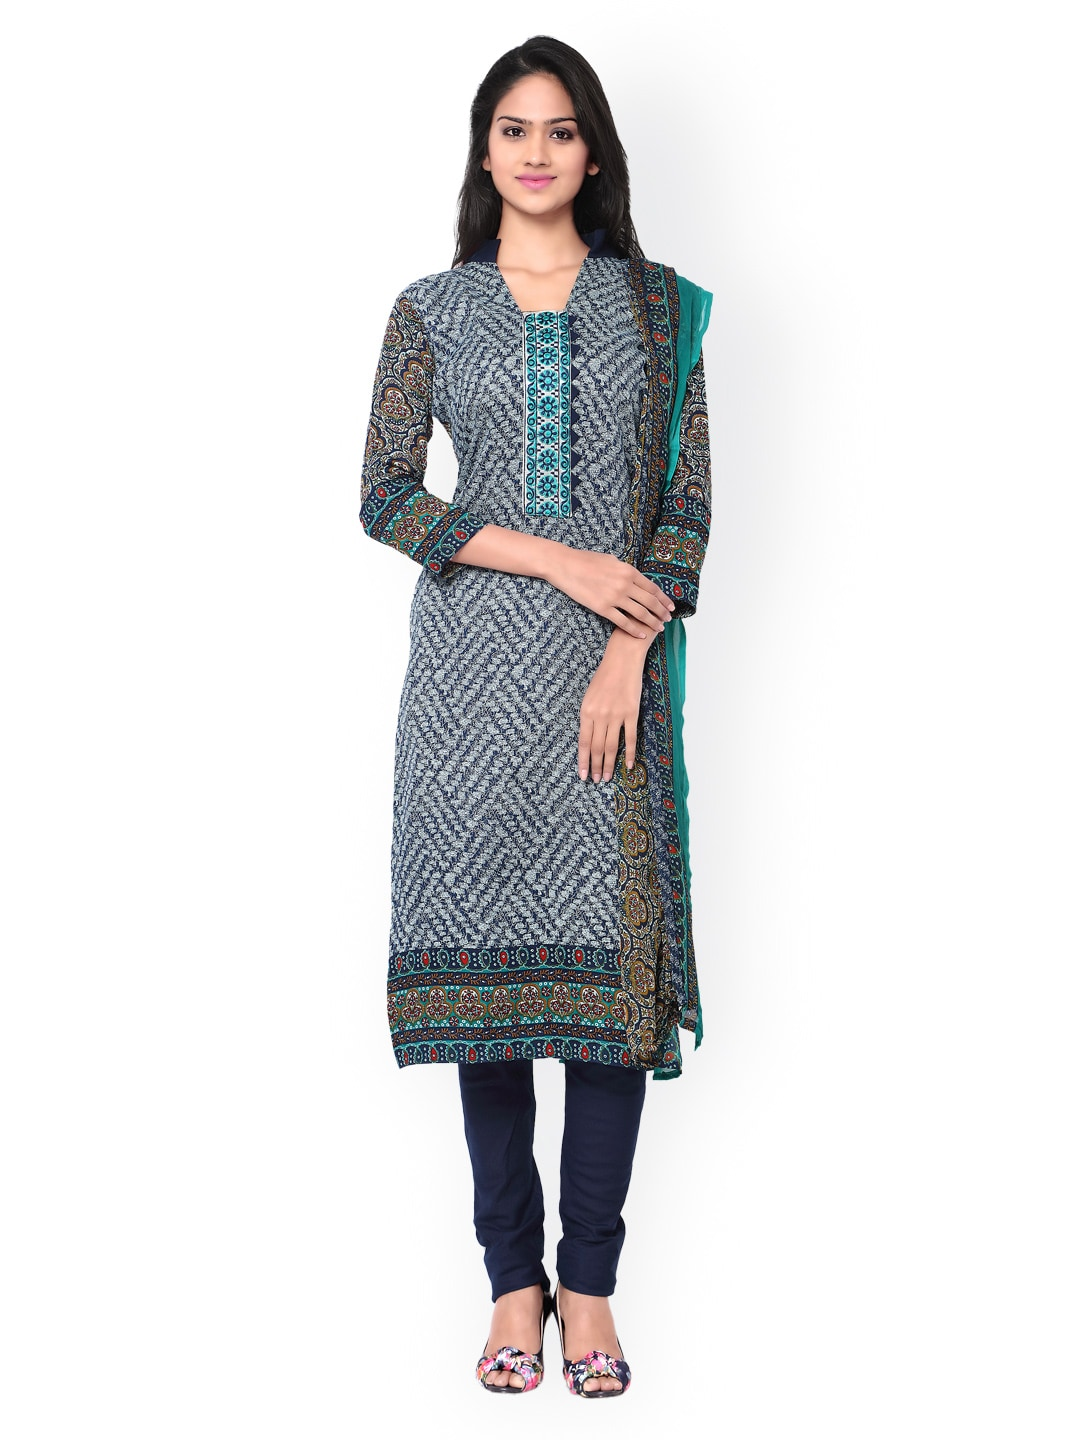 Inddus Navy Printed Cotton Unstitched Dress Material image